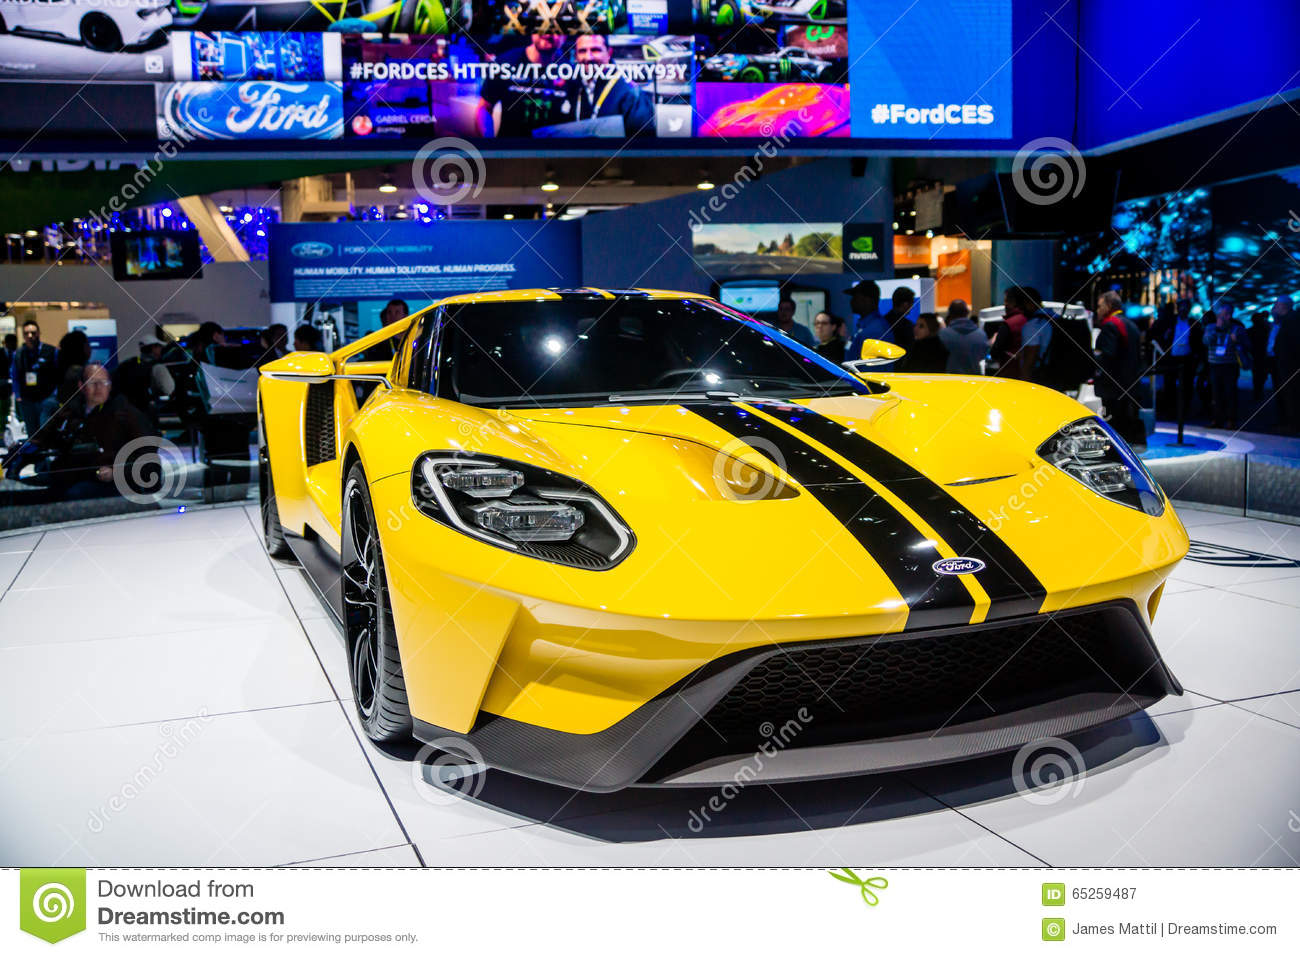 Ford Motor Company Displays The New Gt  Hp Supercar At The   Consumer Electronics Show Ces